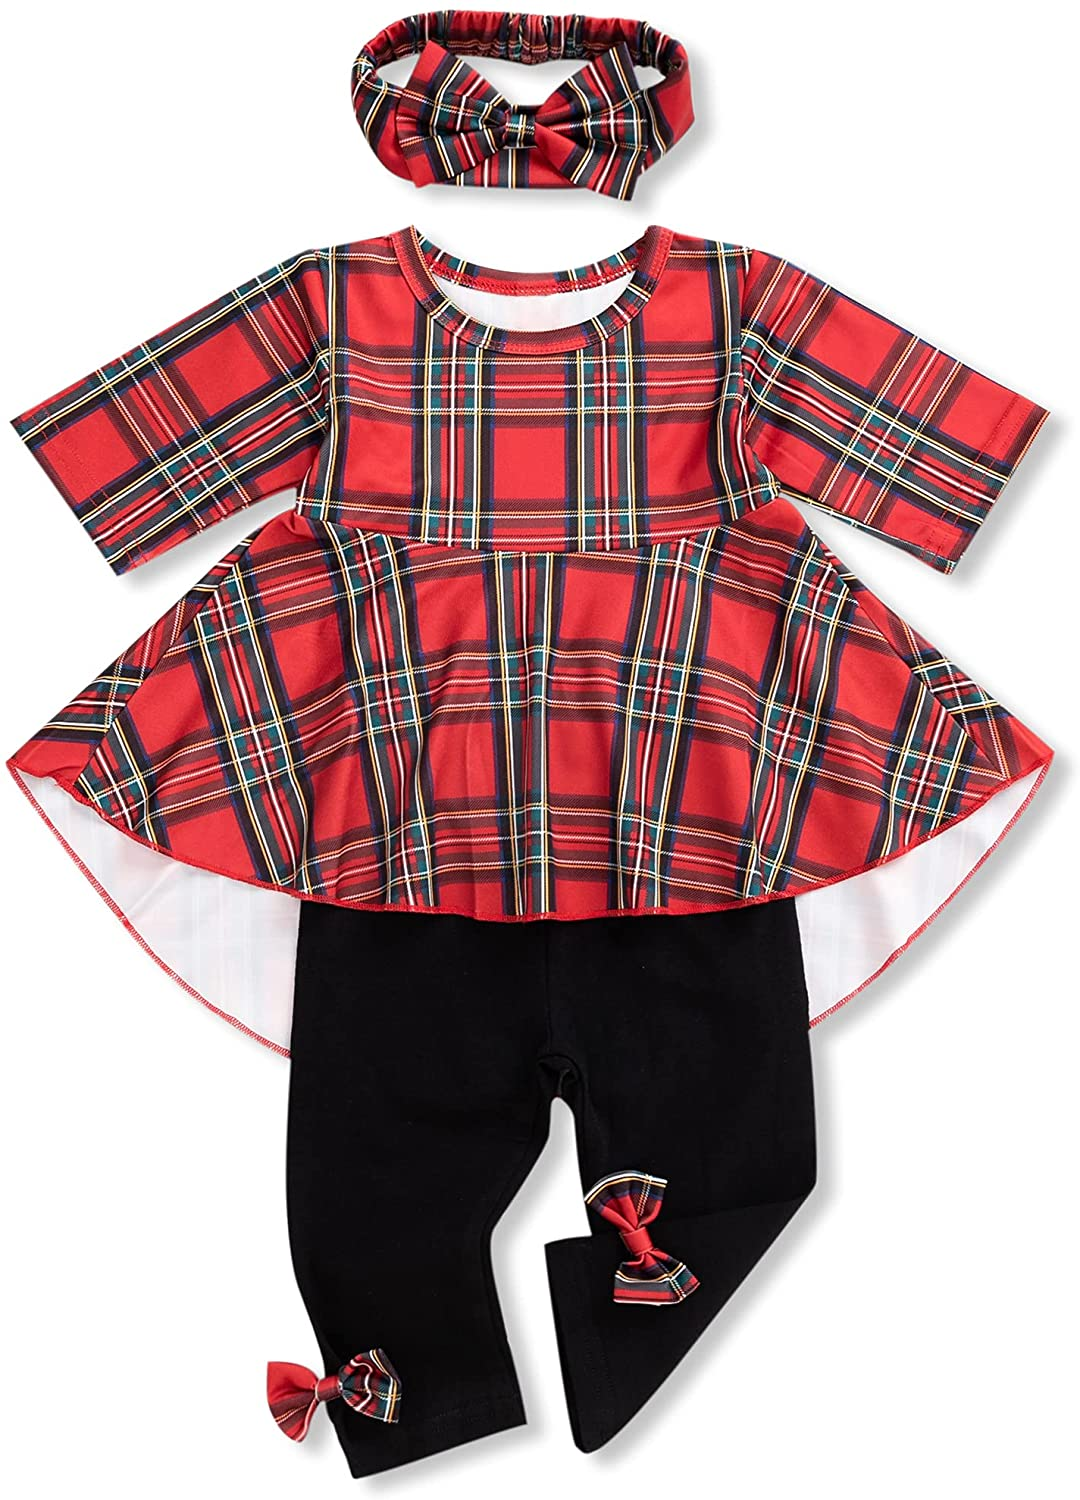 Toddler Girl Fall Clothes Infant Baby Girls Outfit Kids Winter Floral Buffalo Plaid Boutique Tunic Tops Pants Set